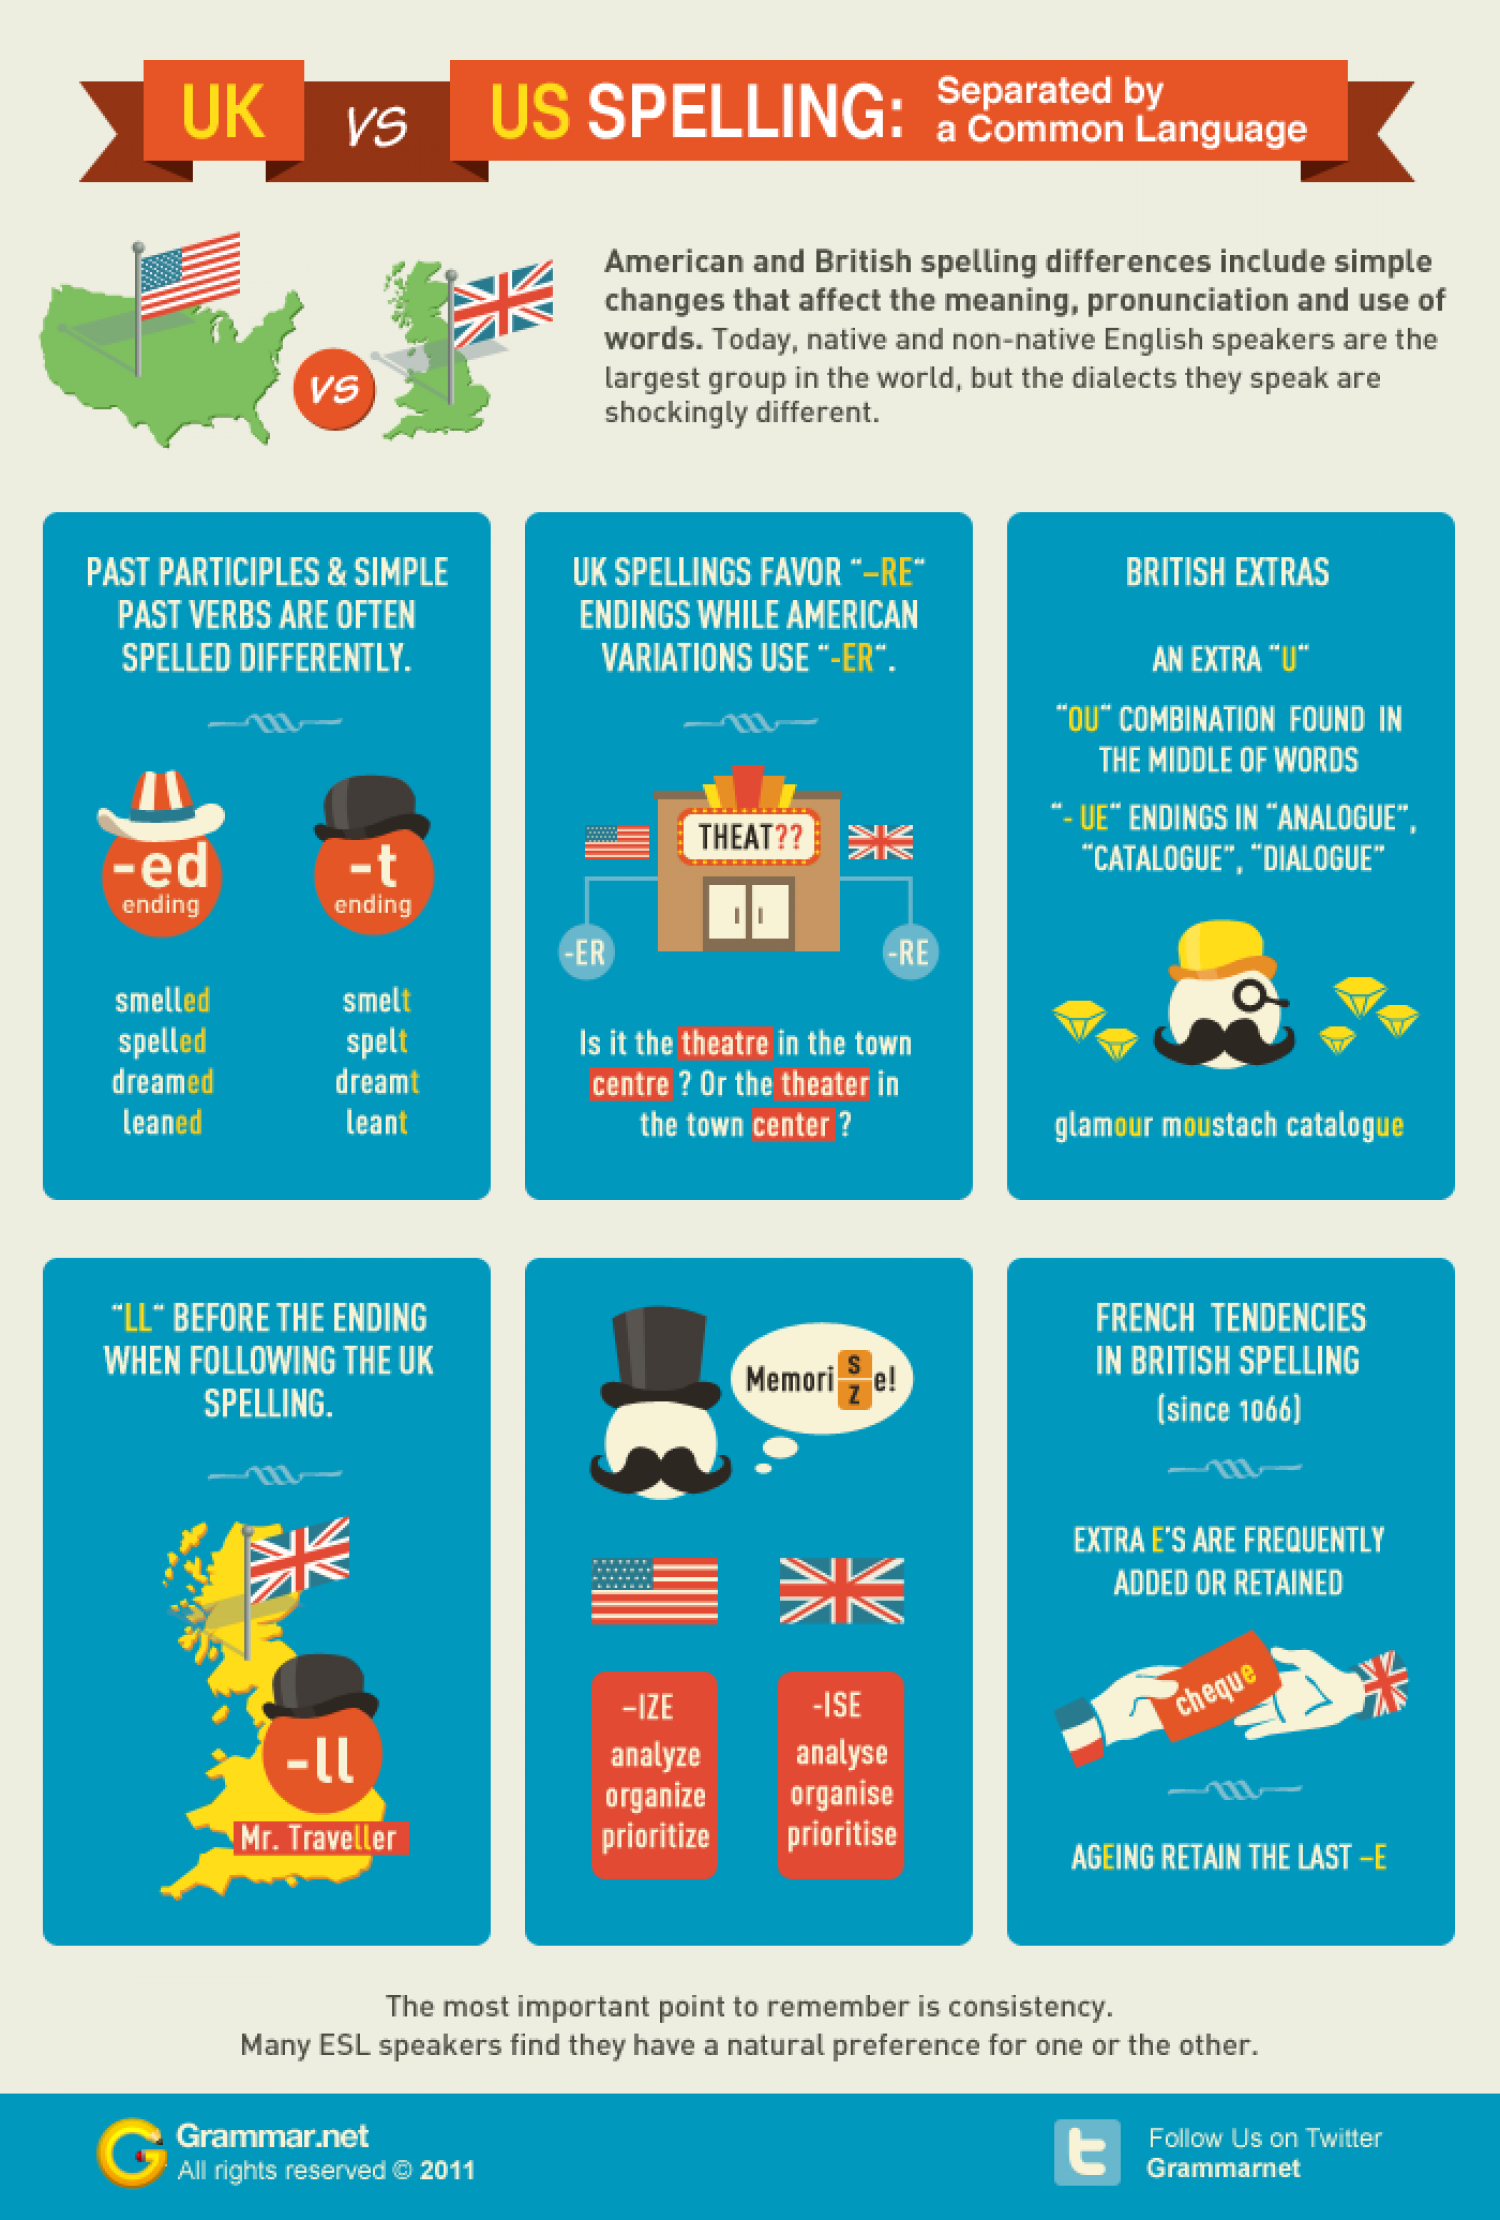 UK vs US spelling: Separated by a Common Language Infographic